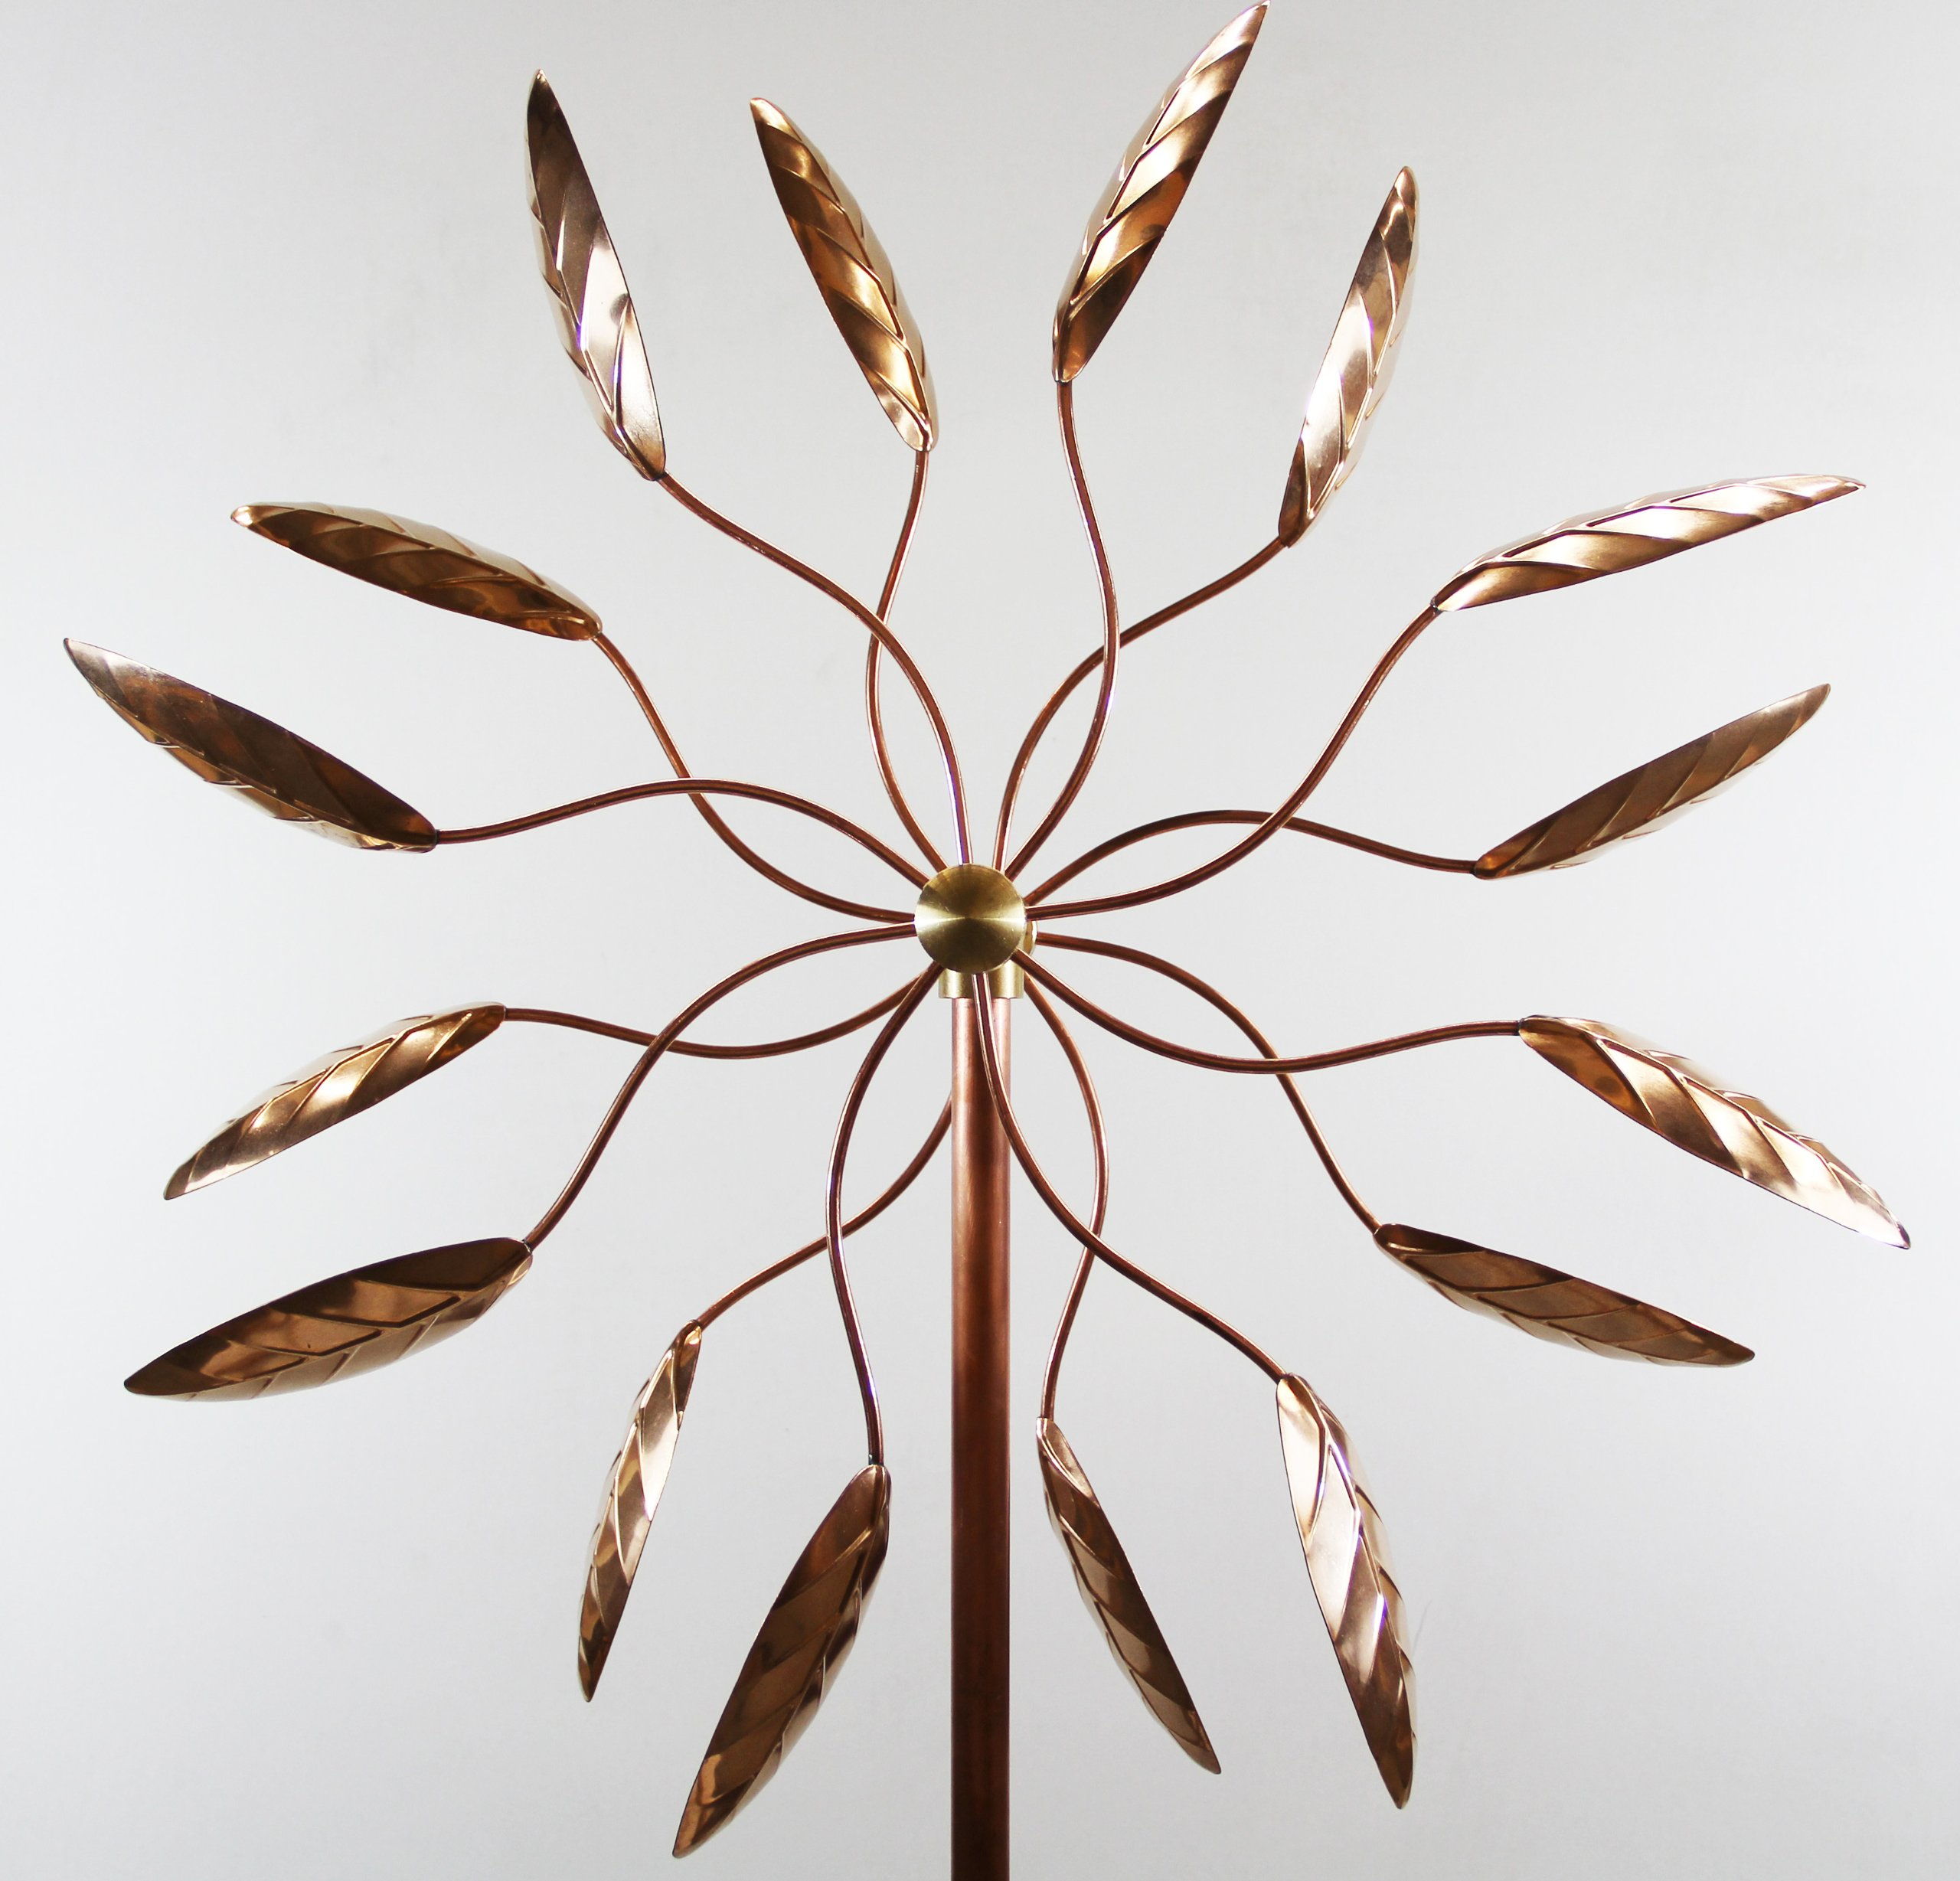 Stanwood Wind Sculpture Kinetic Copper Wind Sculpture, Dual Spinner Spinning Ficus Leaves